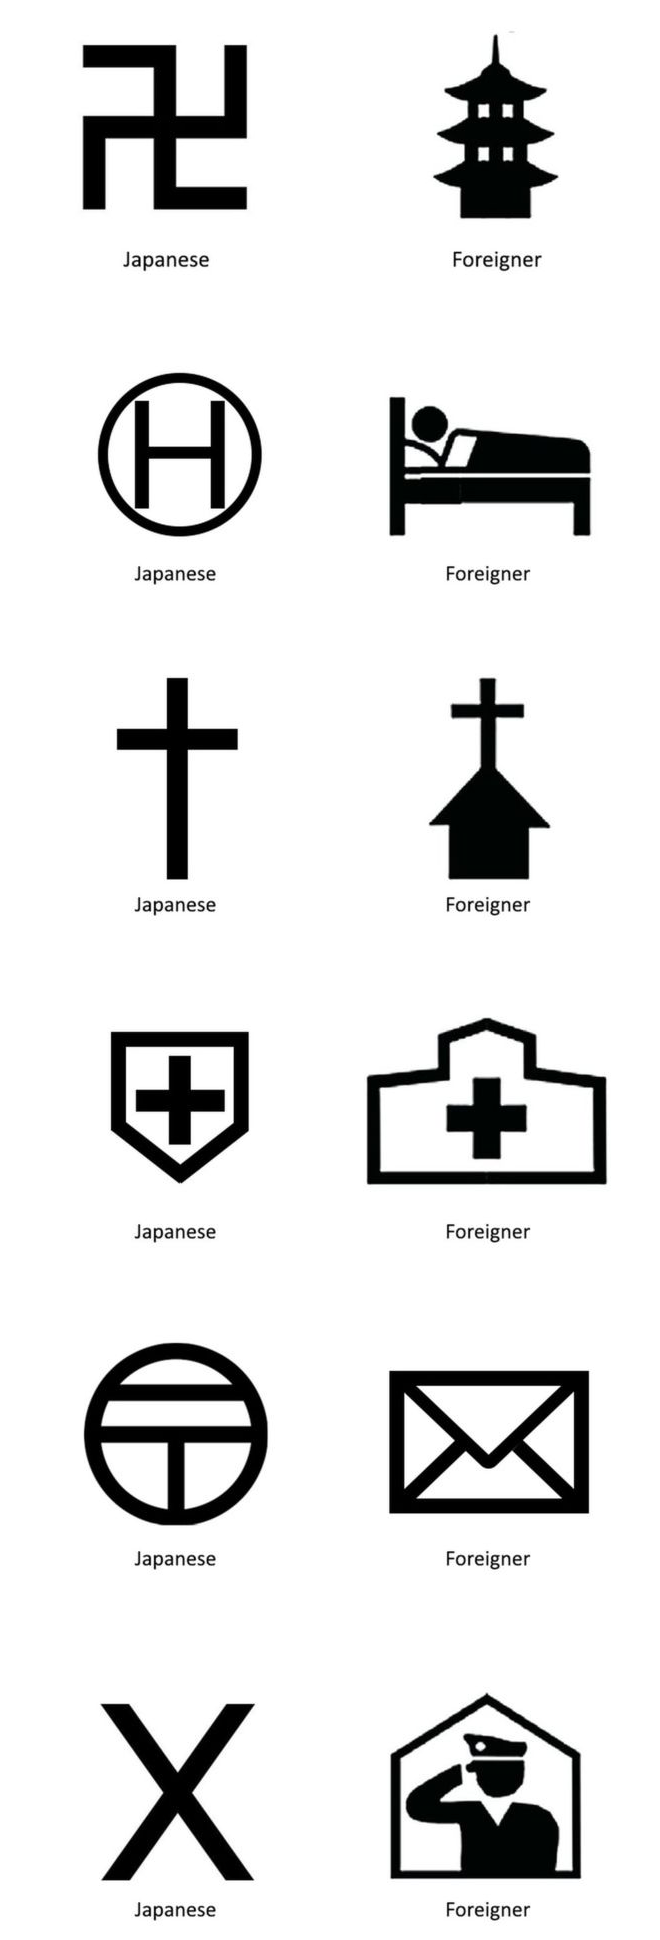 Proposed map symbols